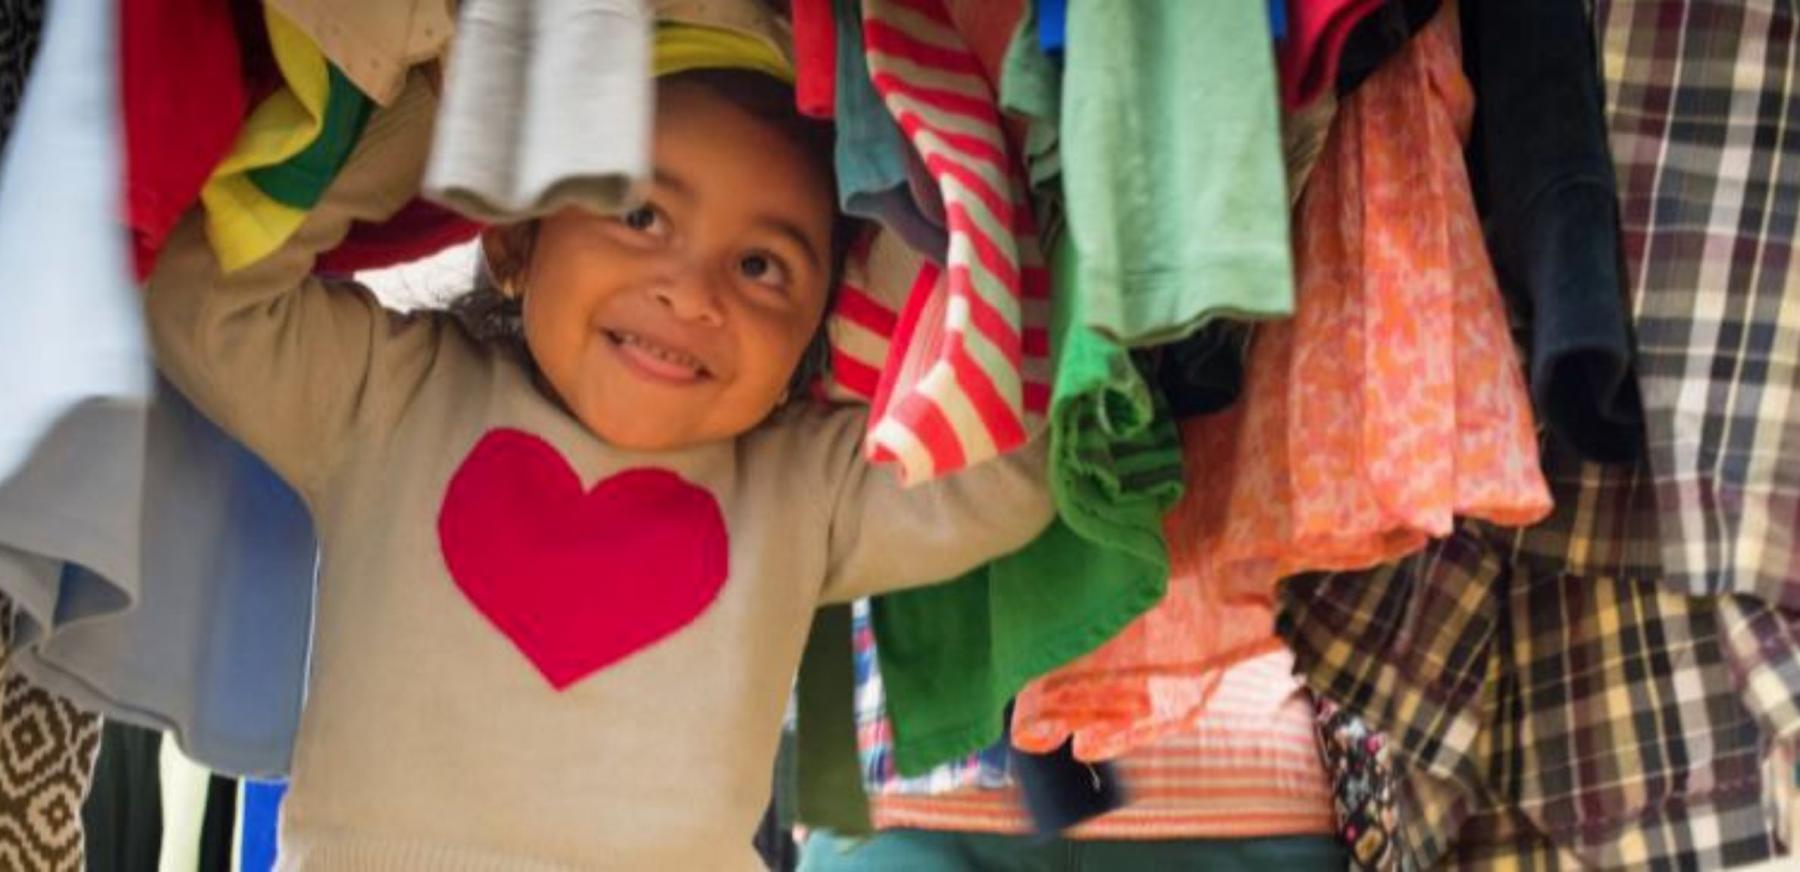 Smiling child underneath a rack of donated clothes.